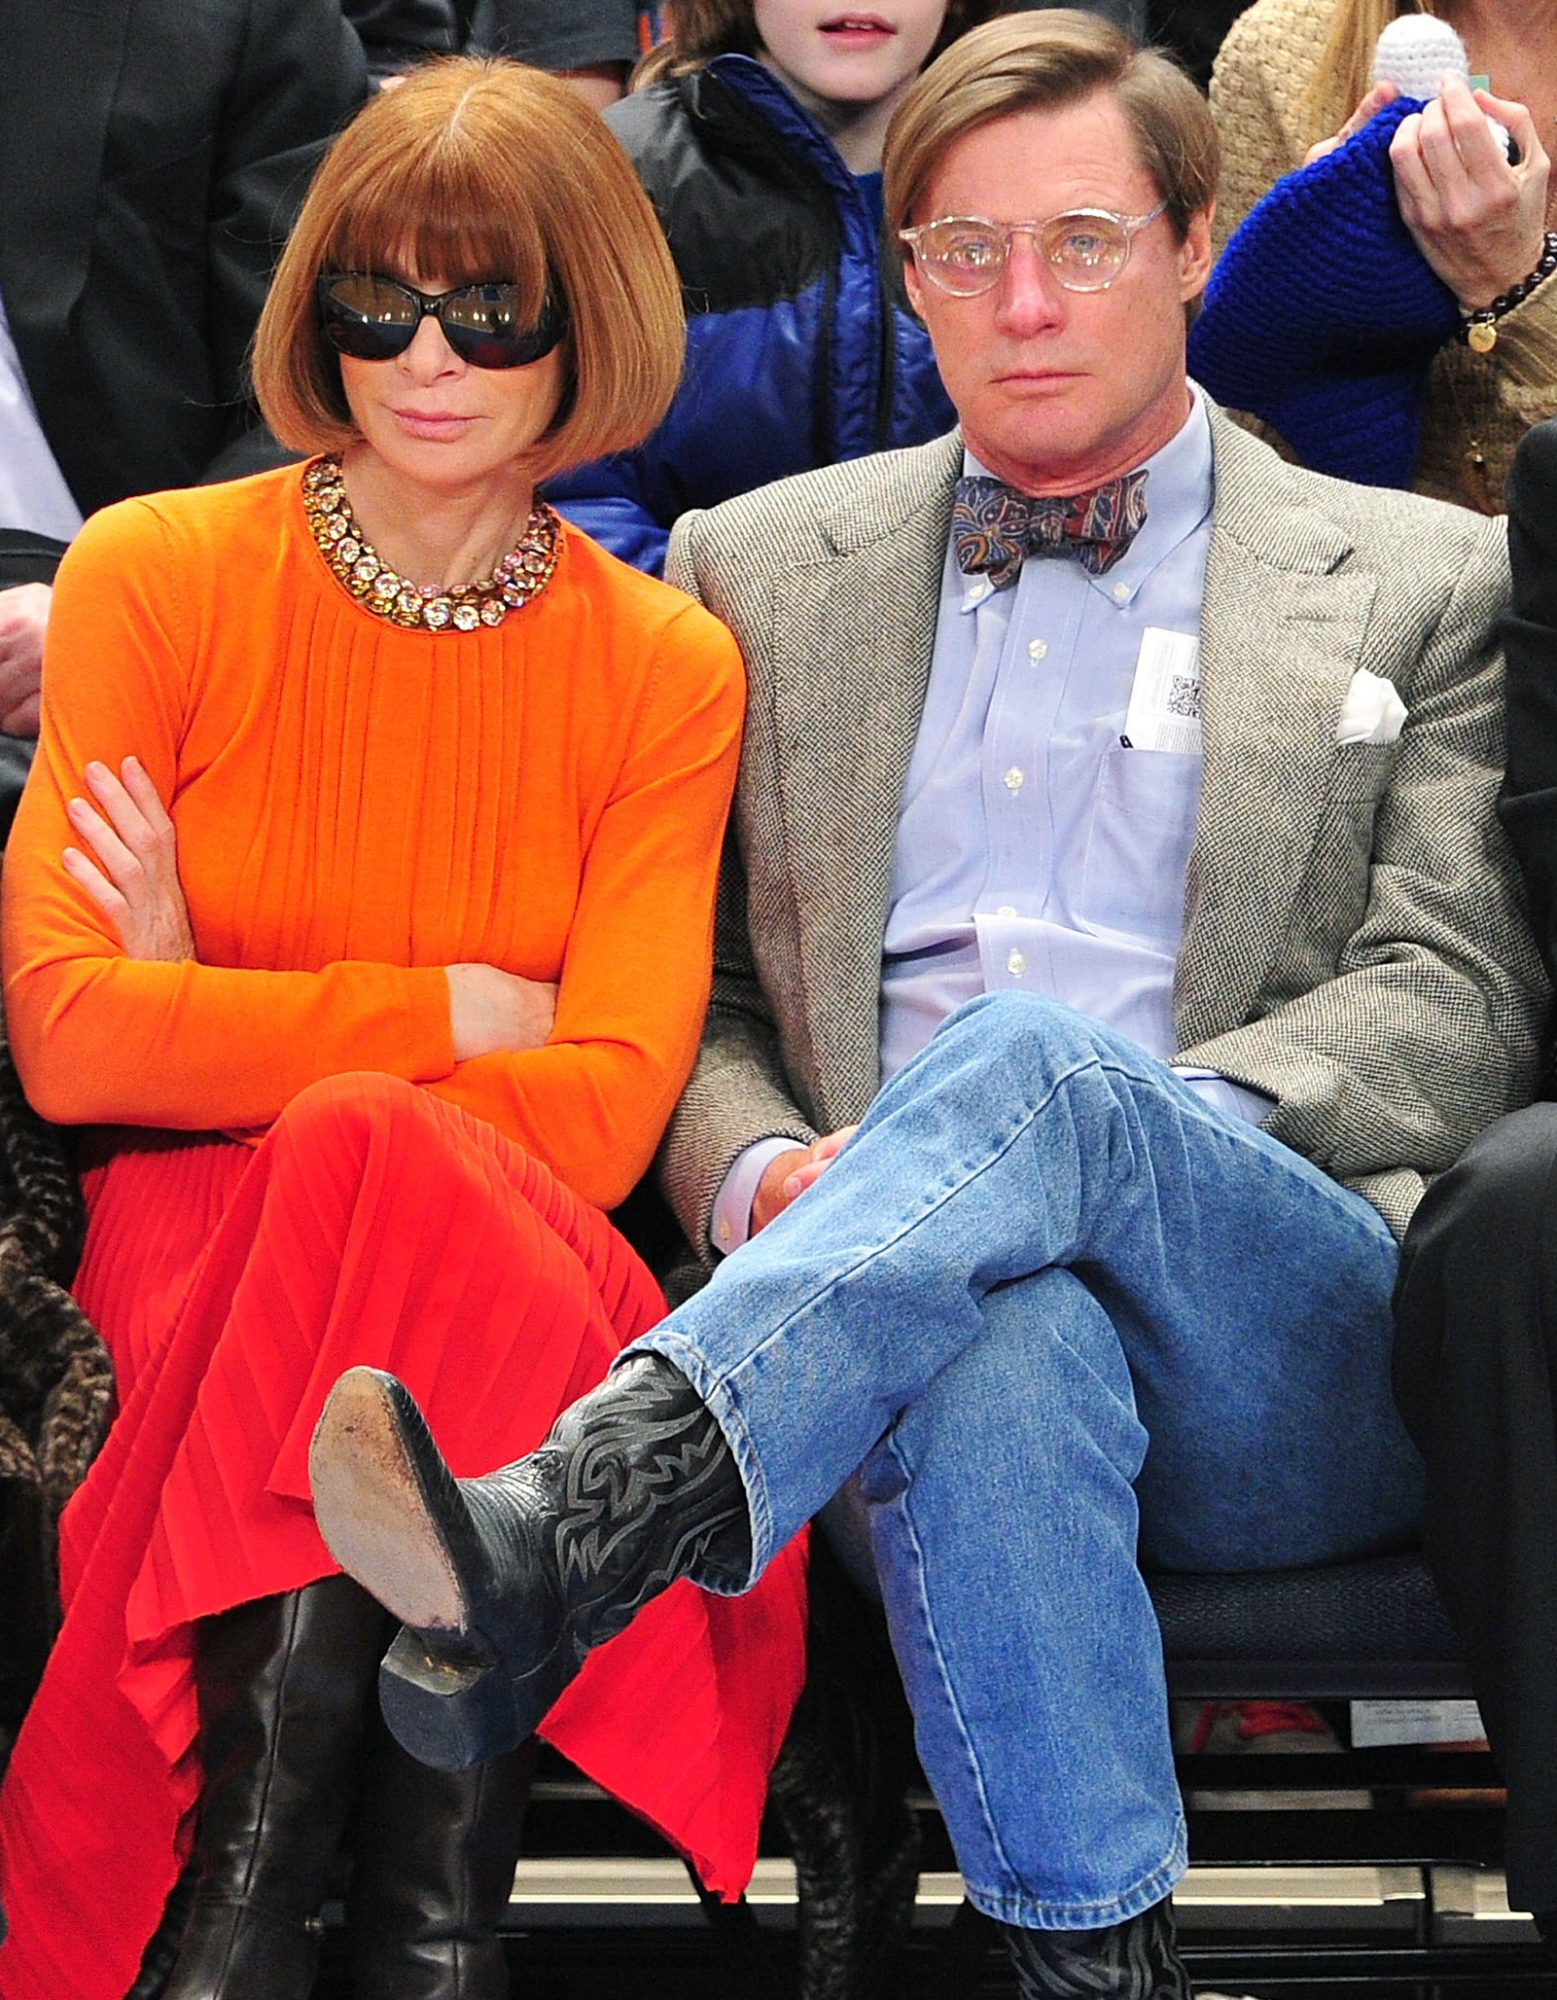 Vogueeditor-in-chiefAnna Wintour and her investor partner Shelby Bryan quietly parted ways years ago, PEOPLE confirms.                             Page Six was first to report the news of their split. A representative for Wintour declined to comment.                             Wintour and Bryan met at the Benefit Ball for the New York Ballet in 1997 when they were each married to different people - the Vogueeditor to psychiatrist David Shaffer and the telecommunications businessman to second wife Katherine Bryan.                             News of a relationship between the two began in February 1998, according toNew York Magazine, and was covered closely by tabloids at the time.